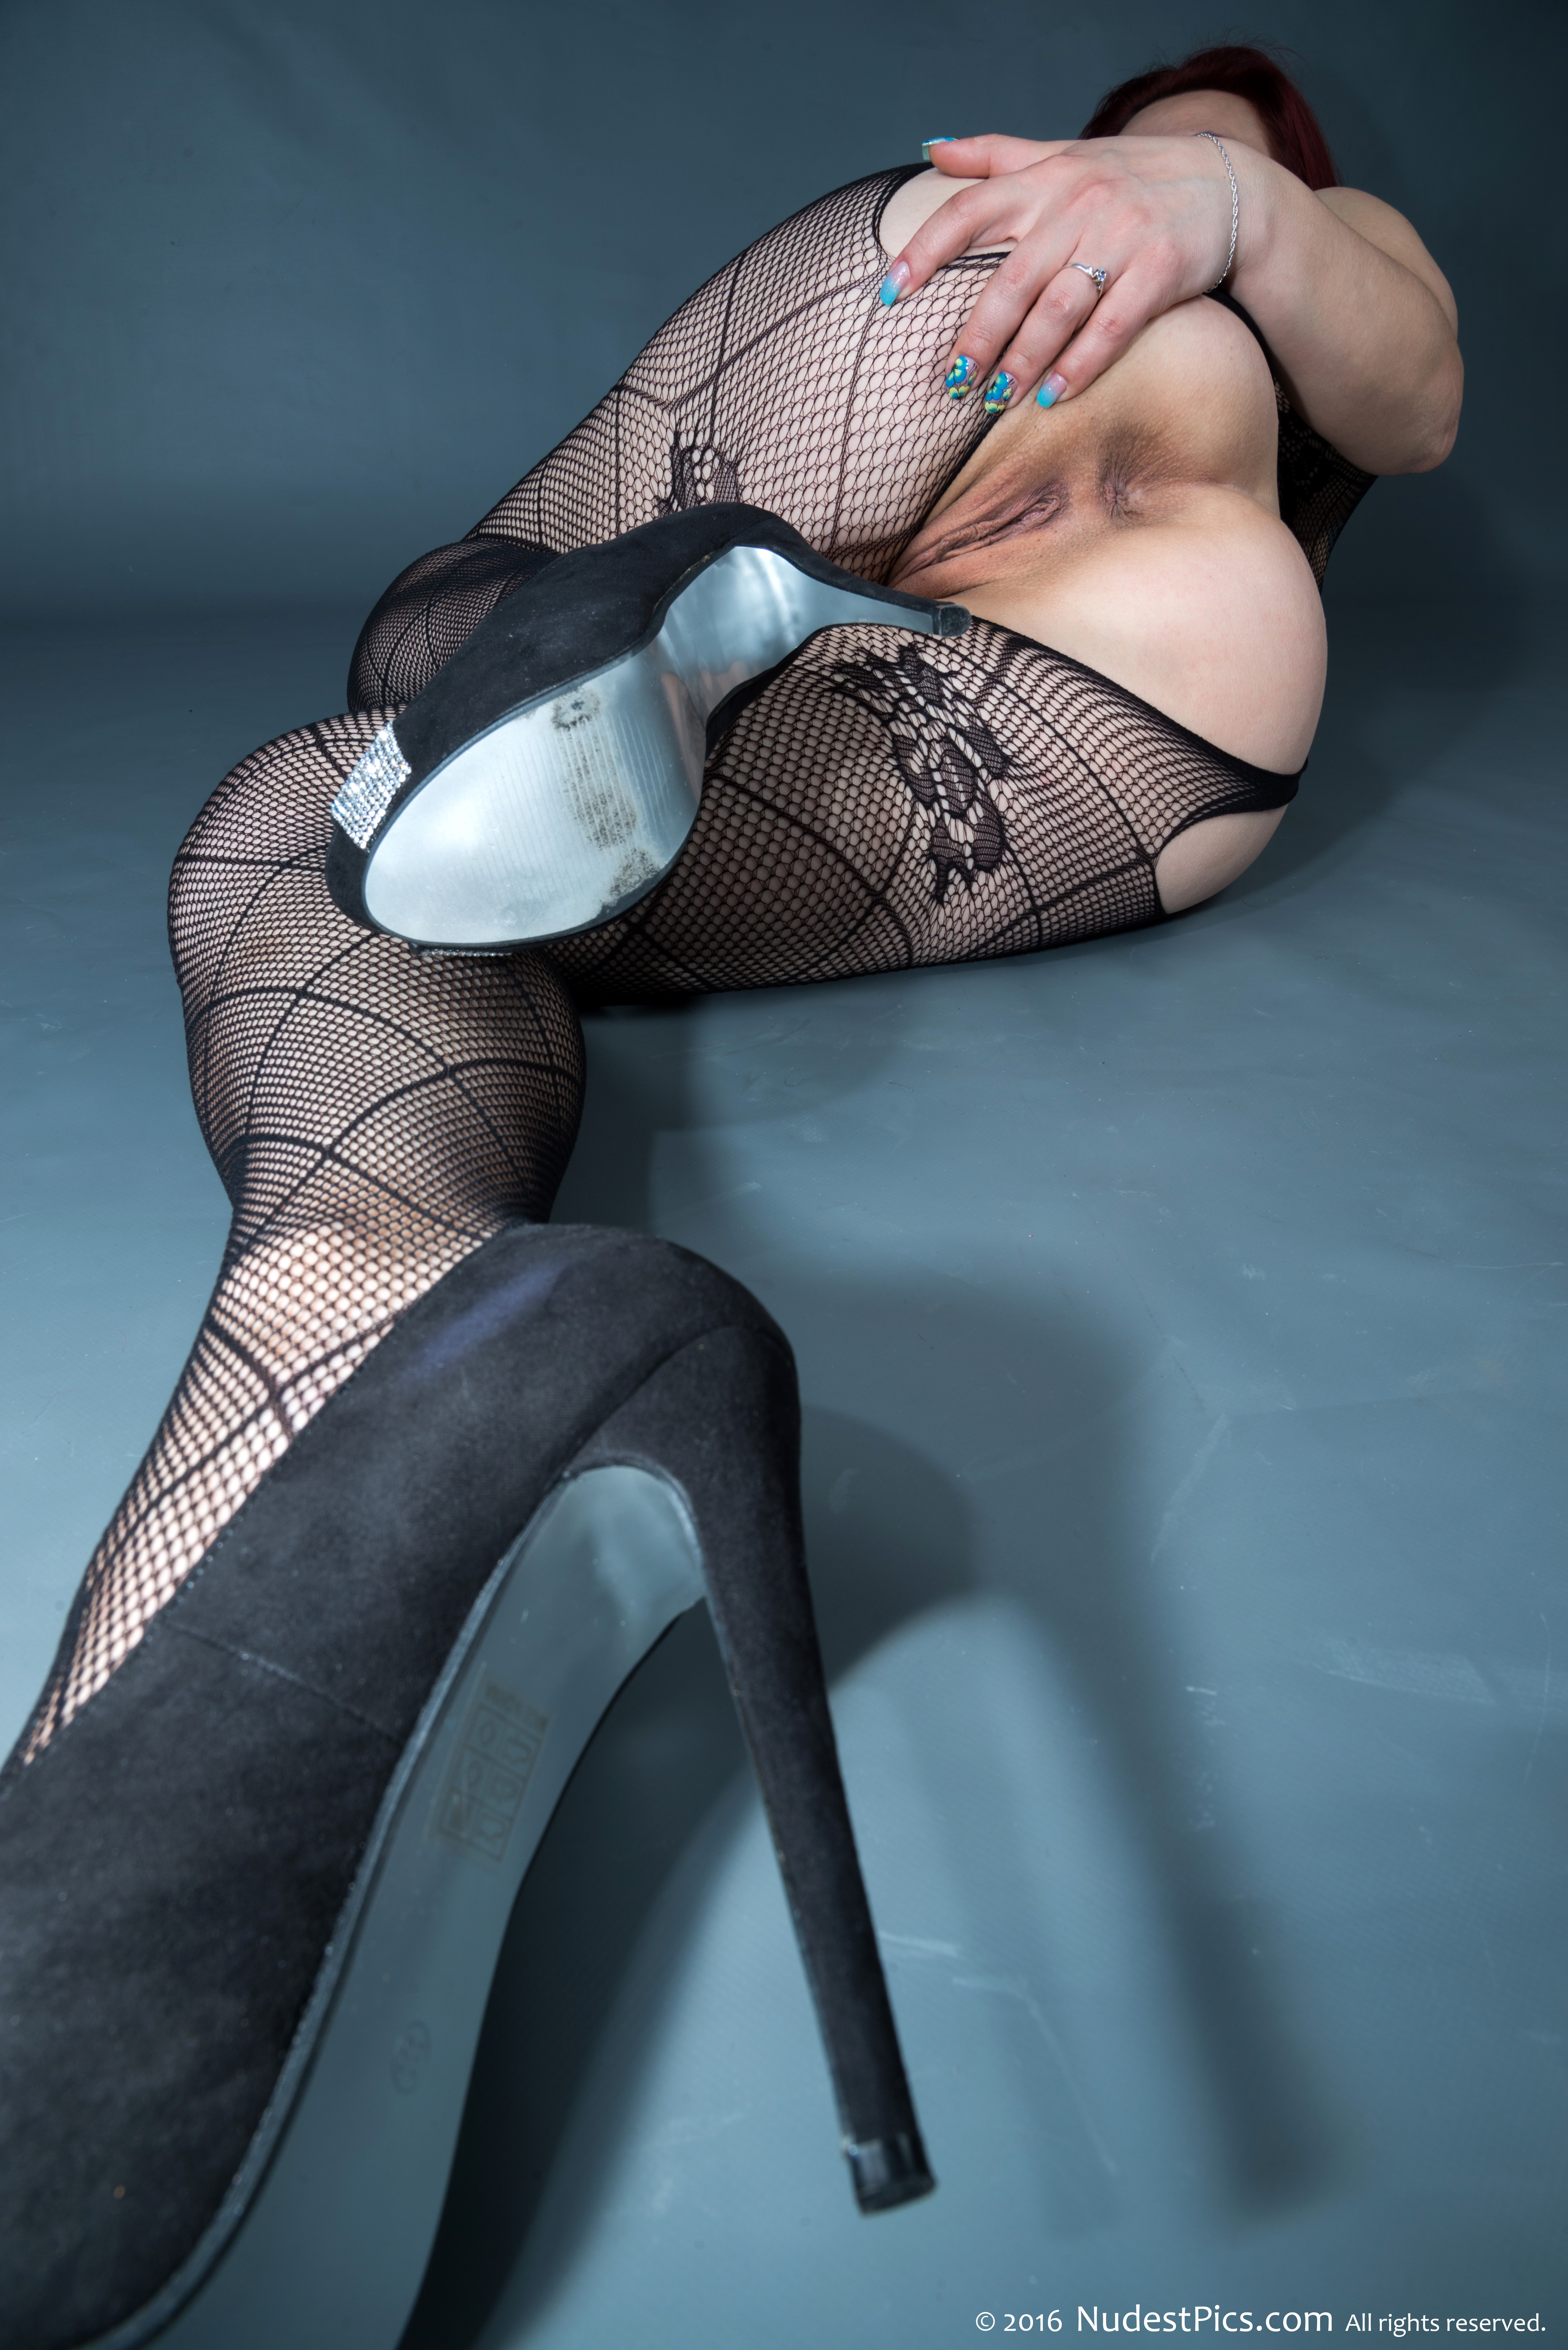 High Heels Sexy Stockings Spreading Hot Derriere HD